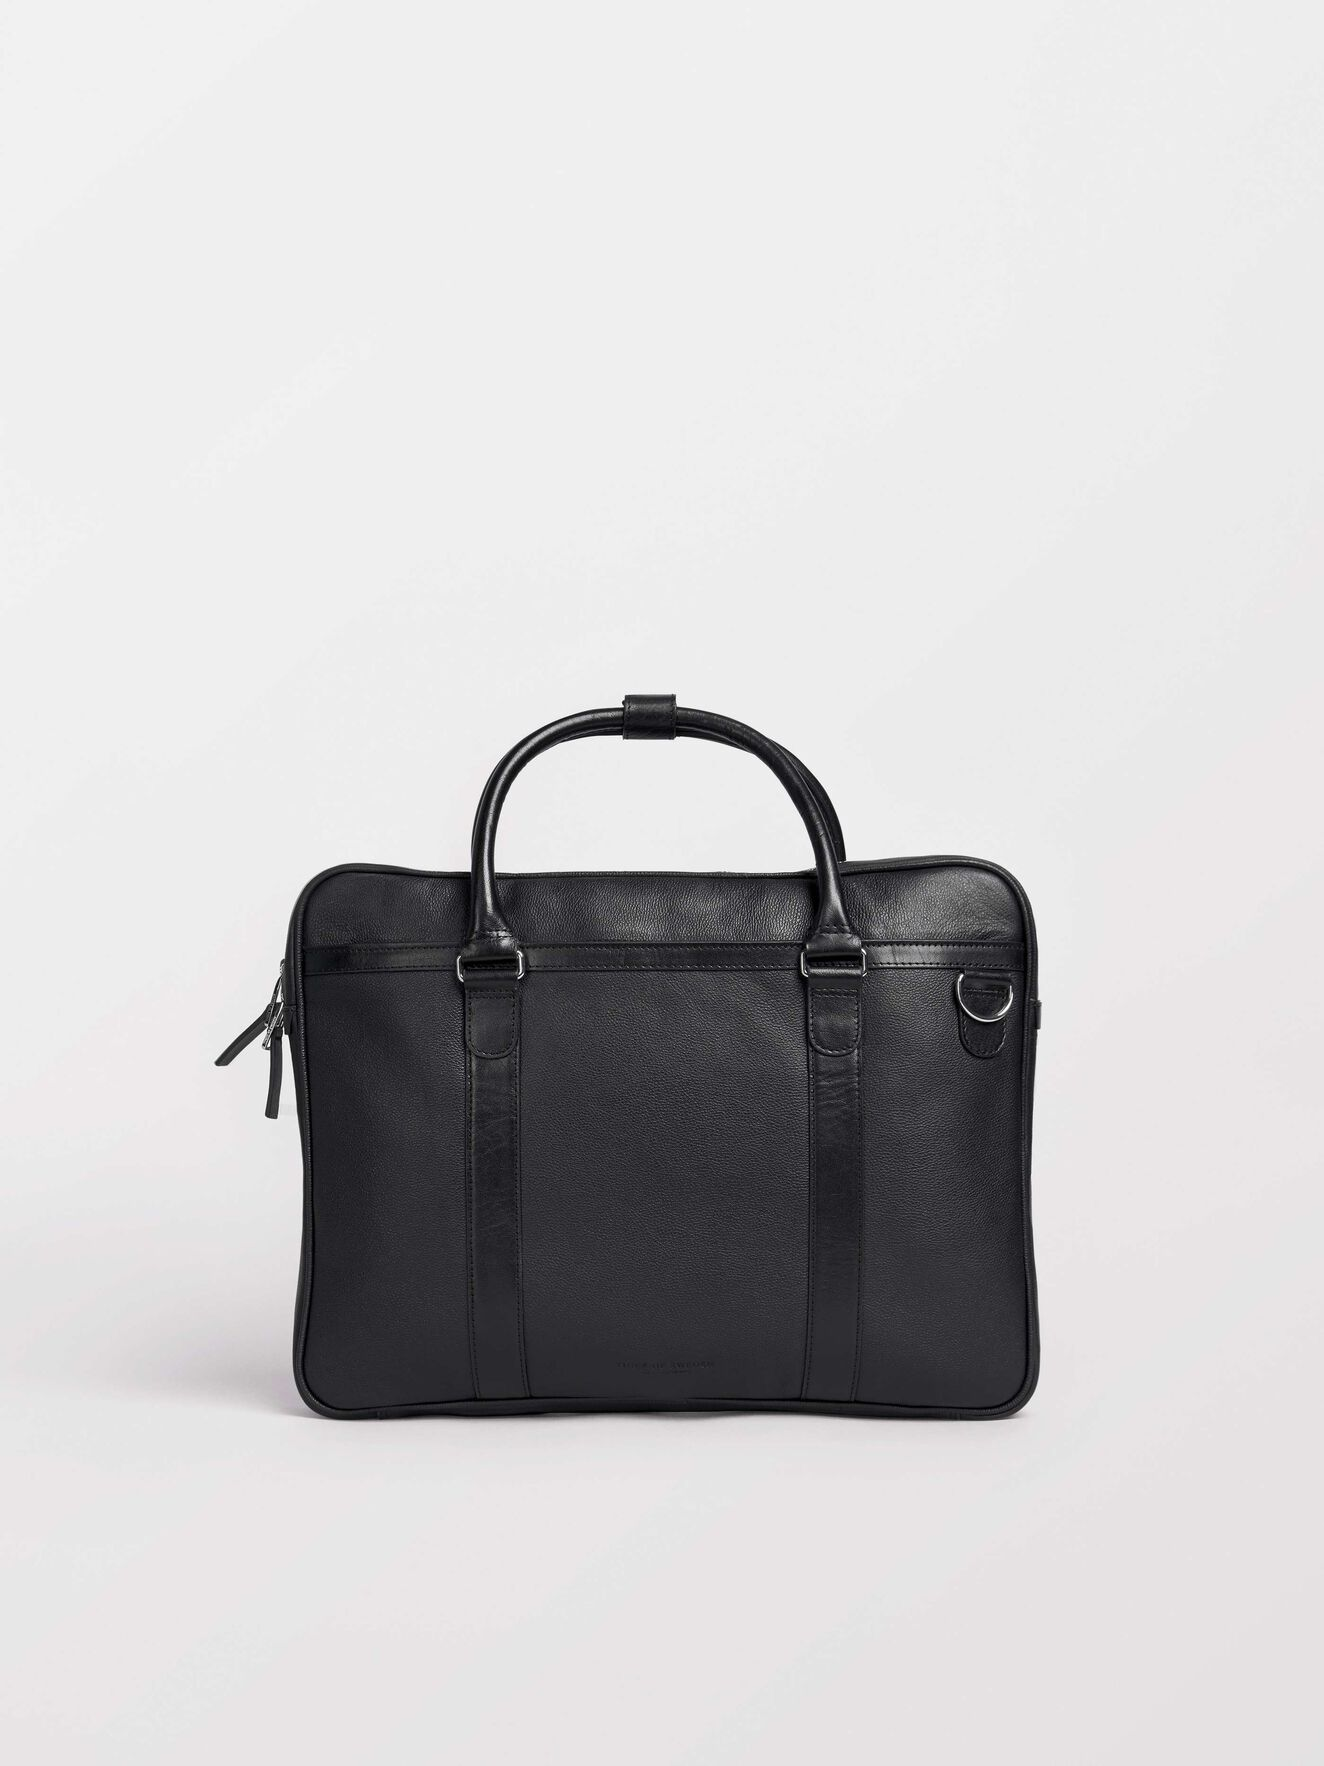 Marquet Briefcase in Black from Tiger of Sweden